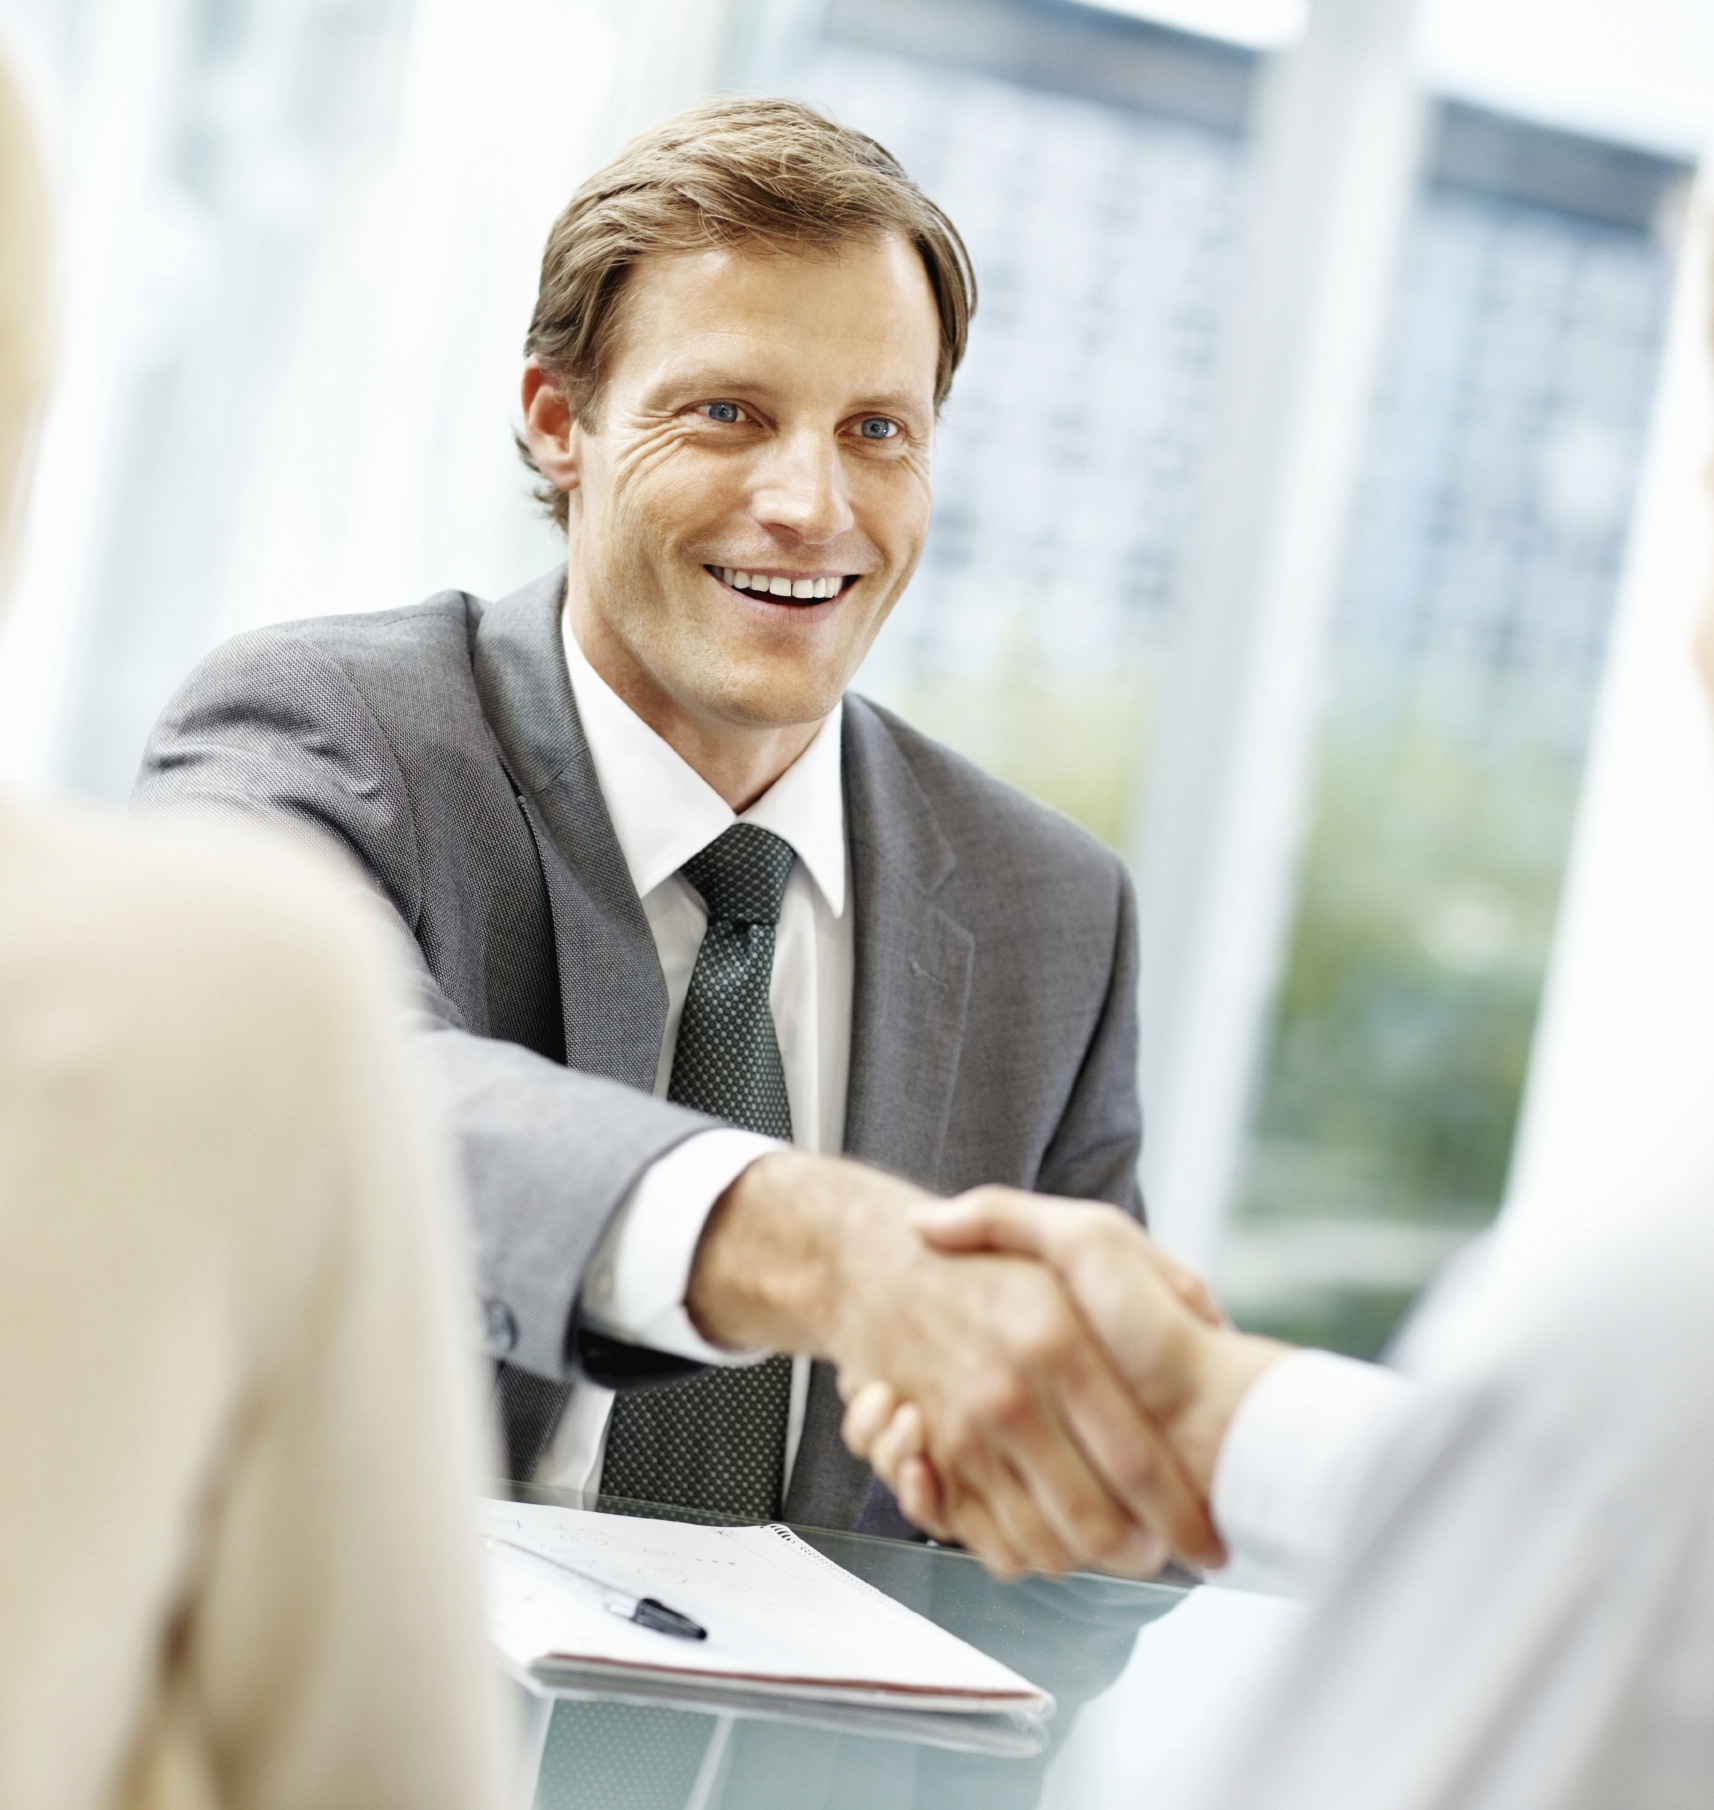 Business officer shaking man's hand